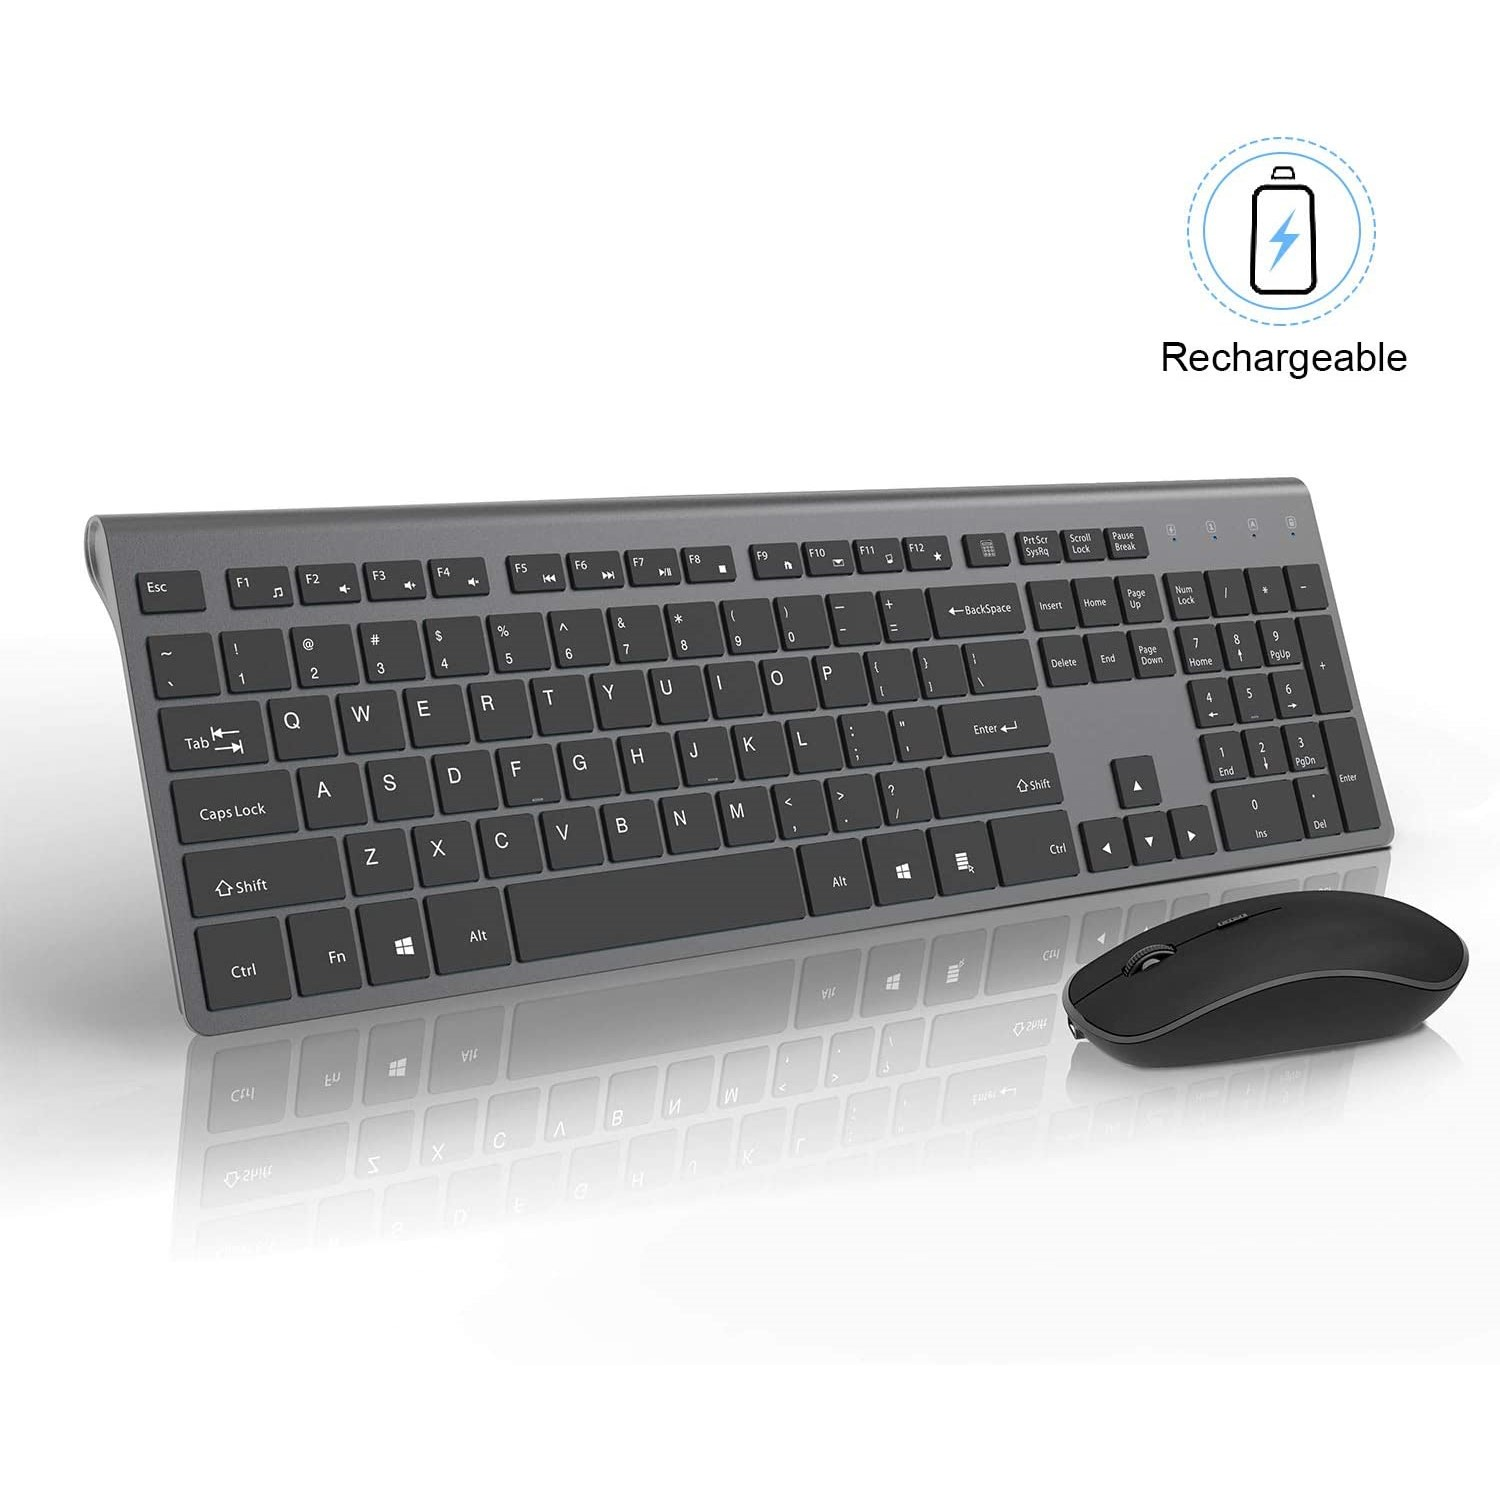 2.4GHz Rechargeable Wireless Keyboard and Mouse Combo French/Spanish/Italian Full Size Keyboard Mouse set,For Desktop/Laptop